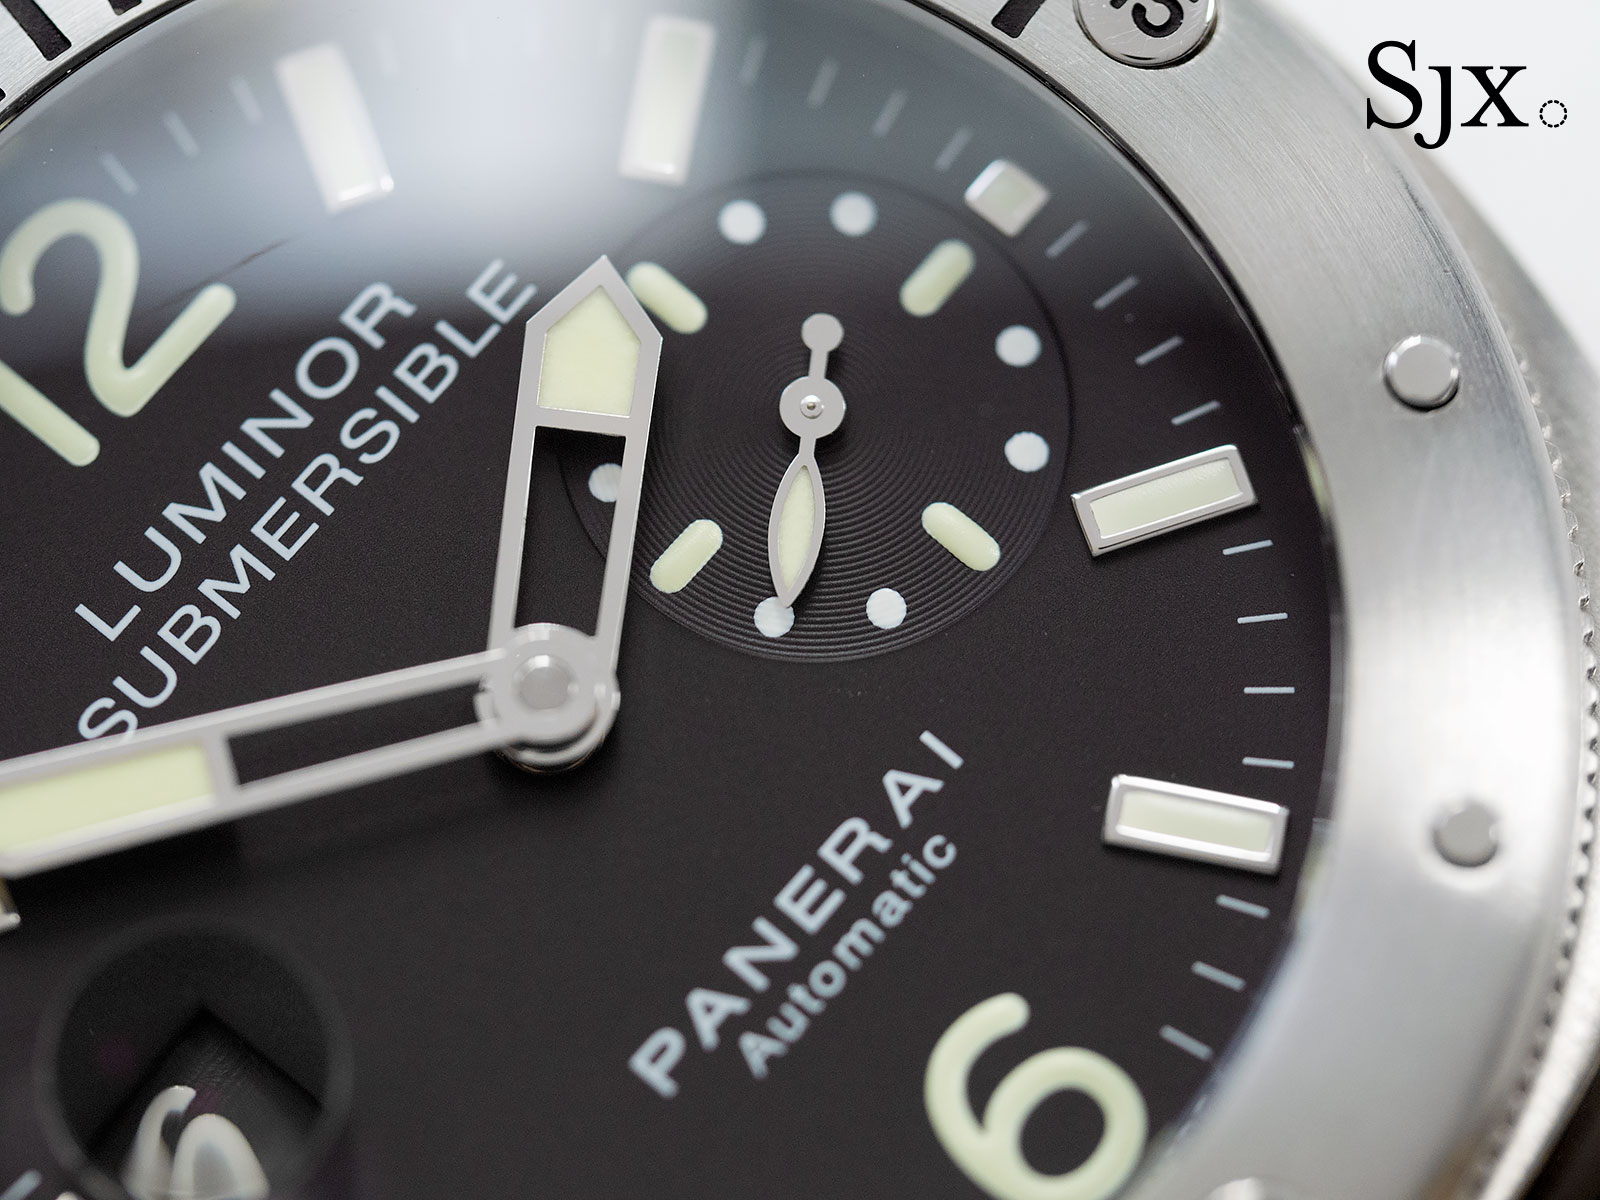 Panerai Submersible Destro Chronopassion PAM239-4